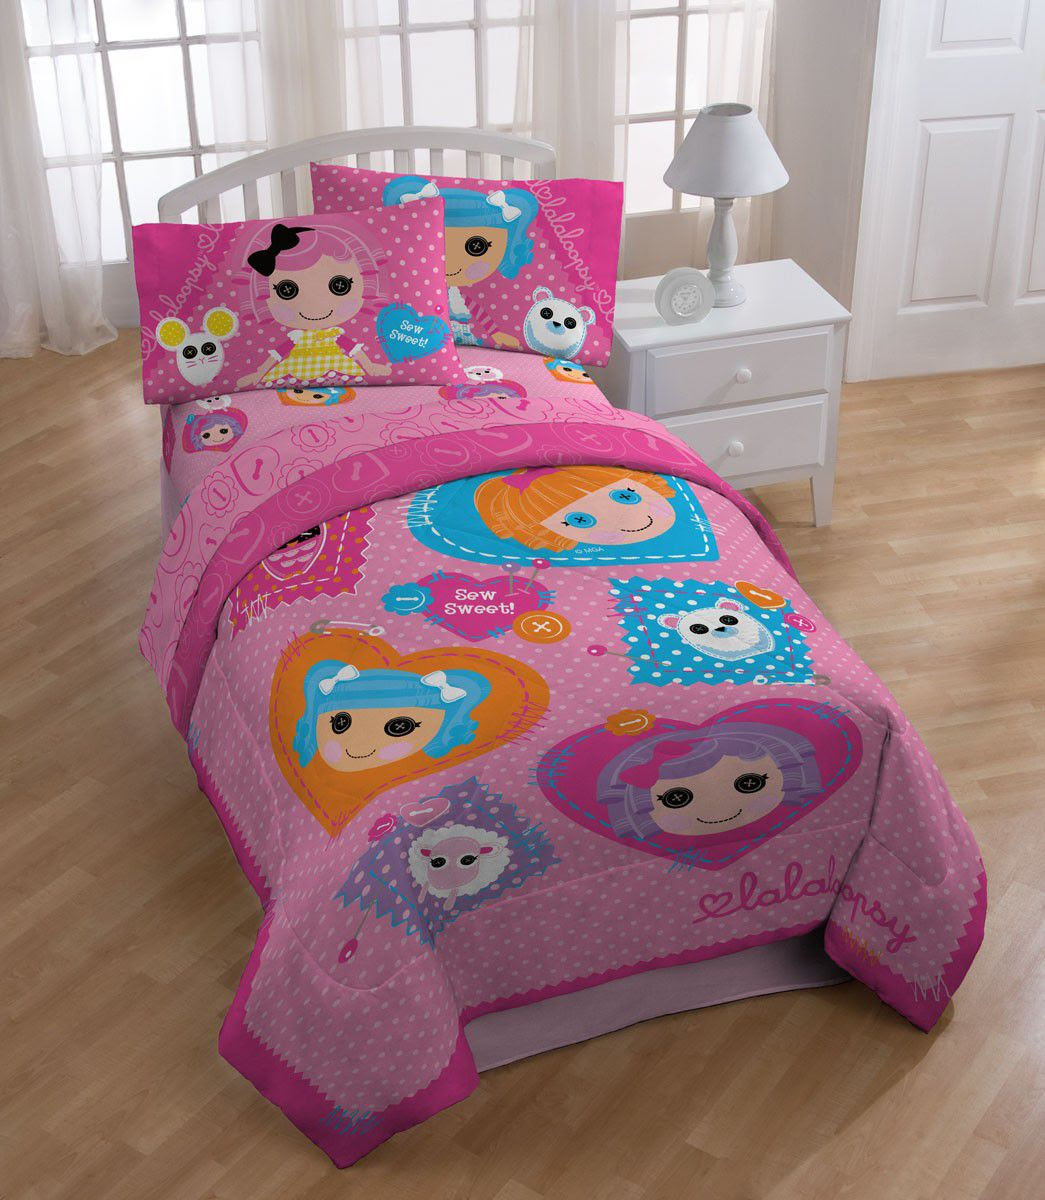 Kids Sheets: Shop for Kids Bedding at Sears